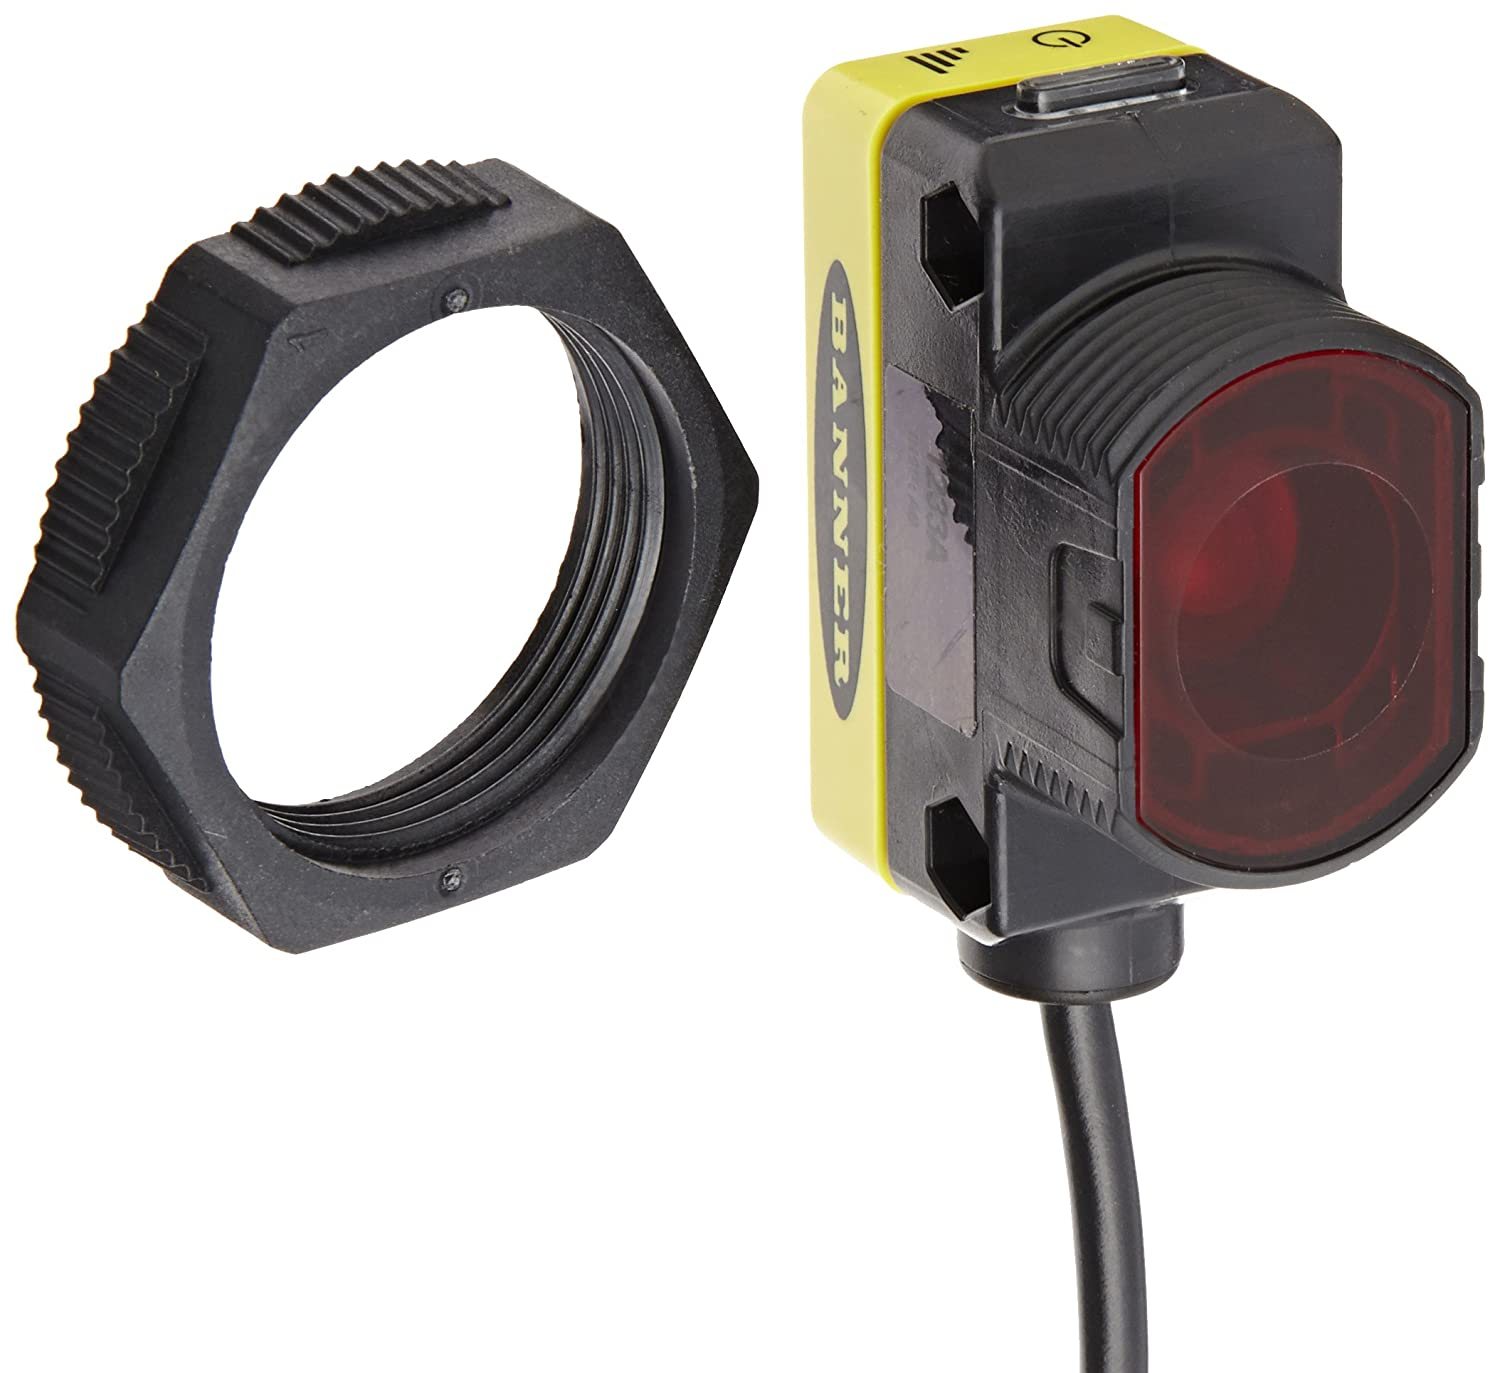 5 Wire Connection 2 meters Cable Length Banner QS30R World Beam Universal Sensor 875nm Infrared Opposed 60m Range